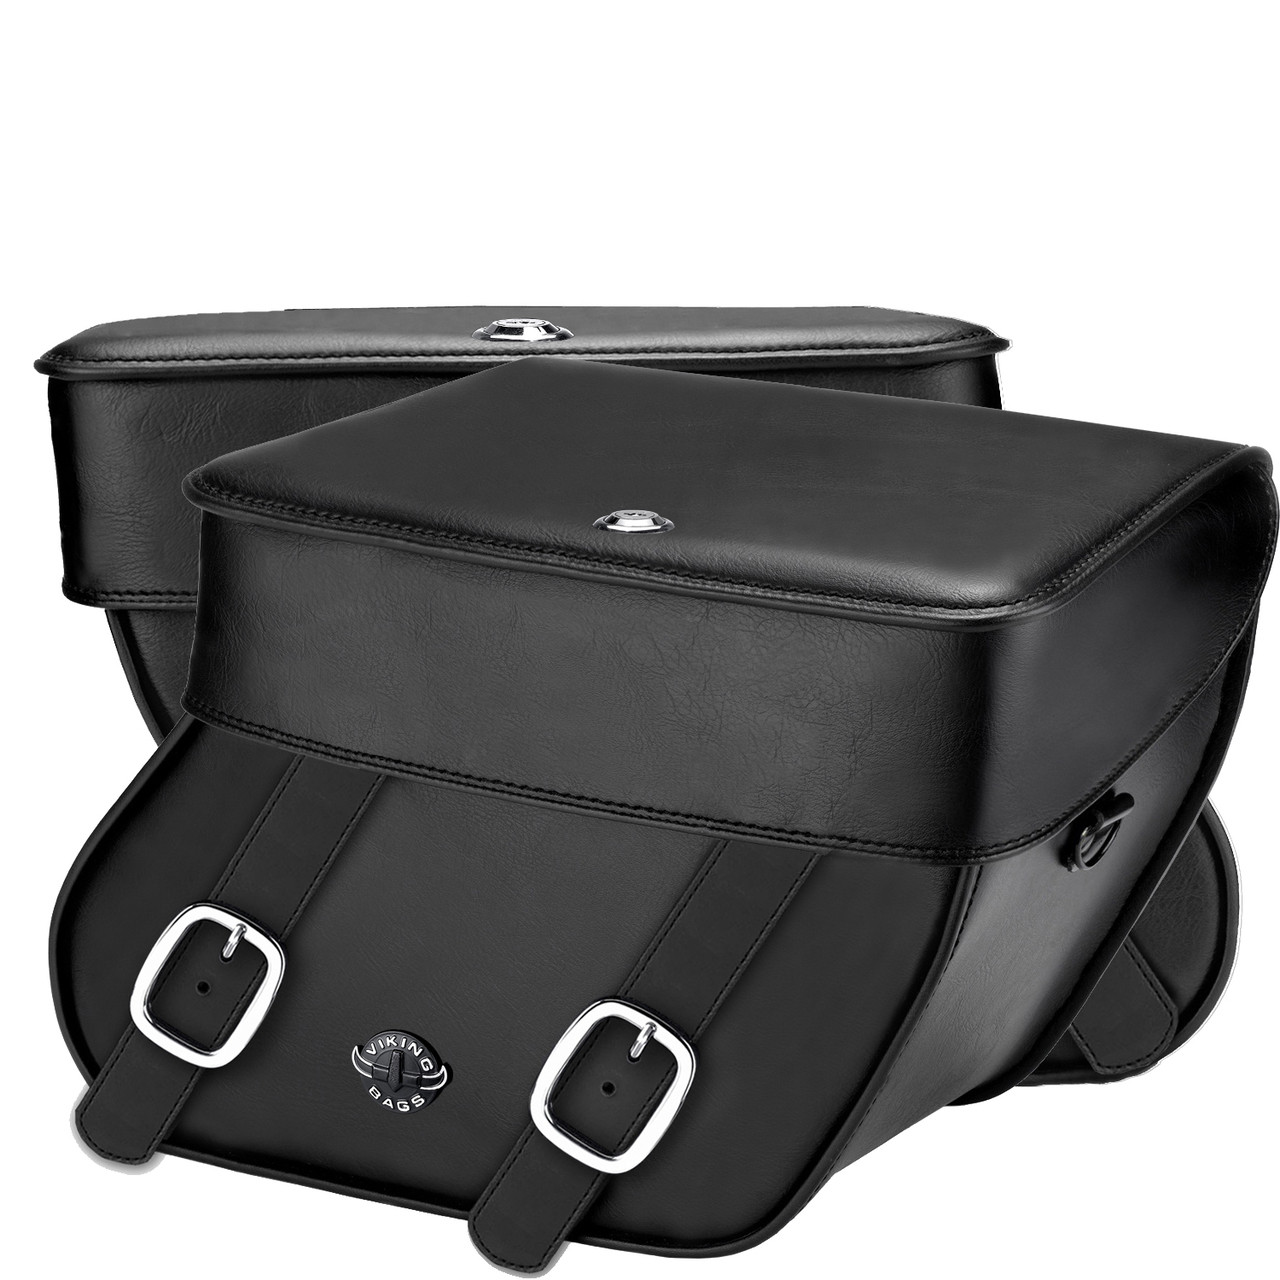 Concord Leather Saddlebags Both Bags View